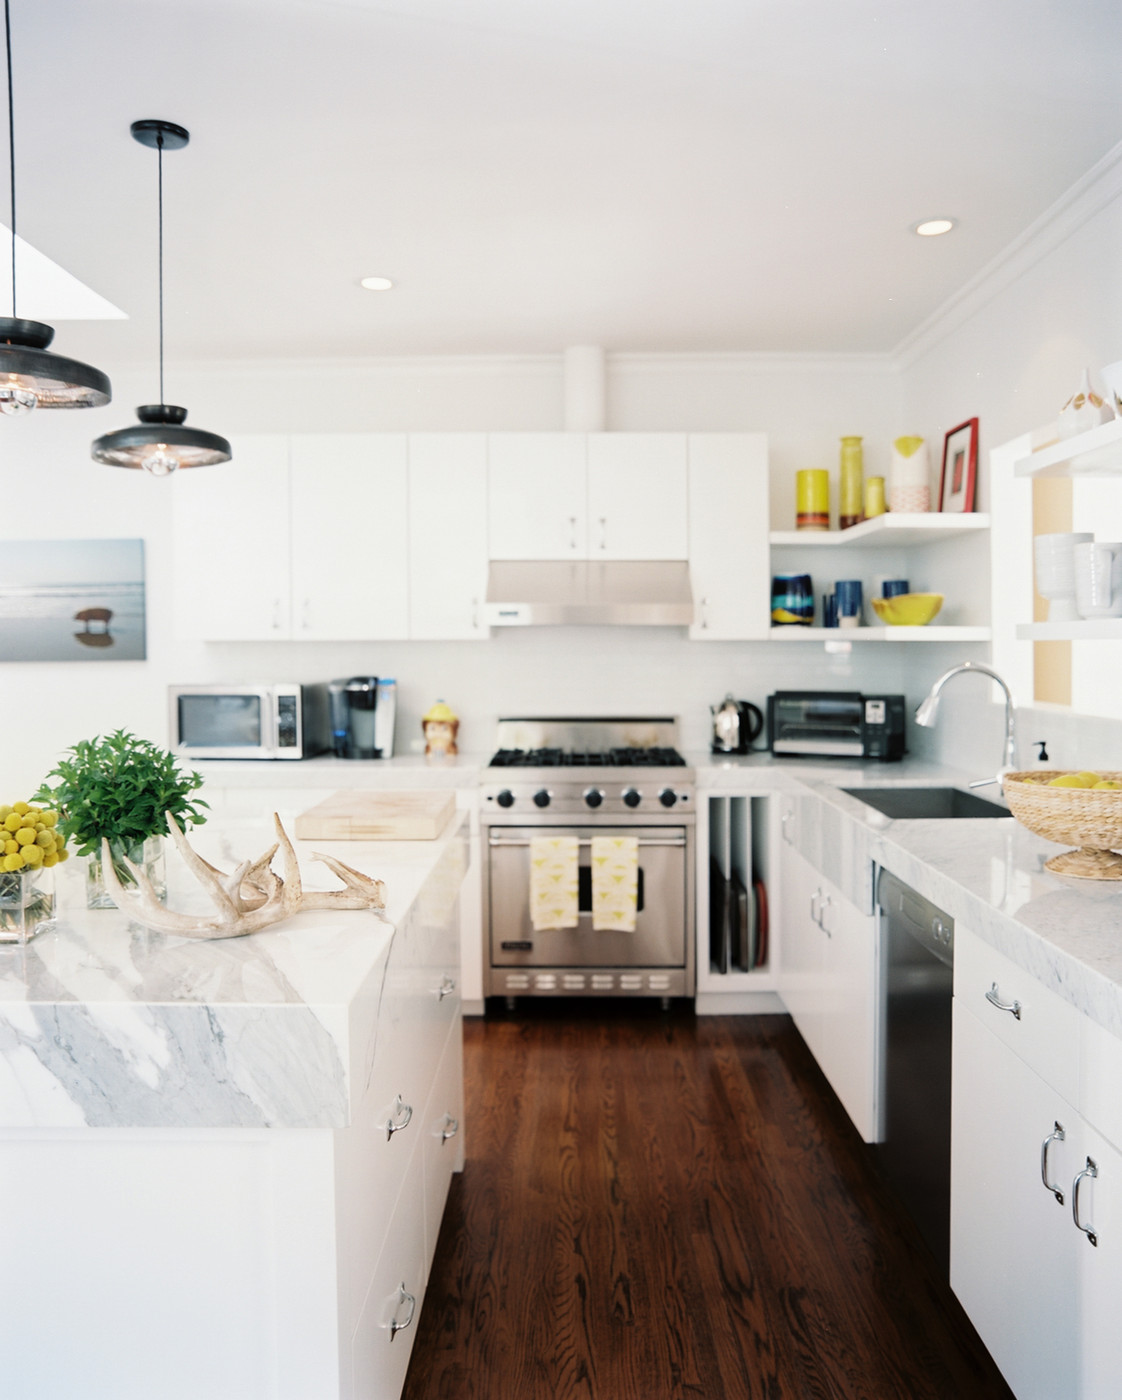 White Kitchen Counter: Marble Countertops Photos, Design, Ideas, Remodel, And